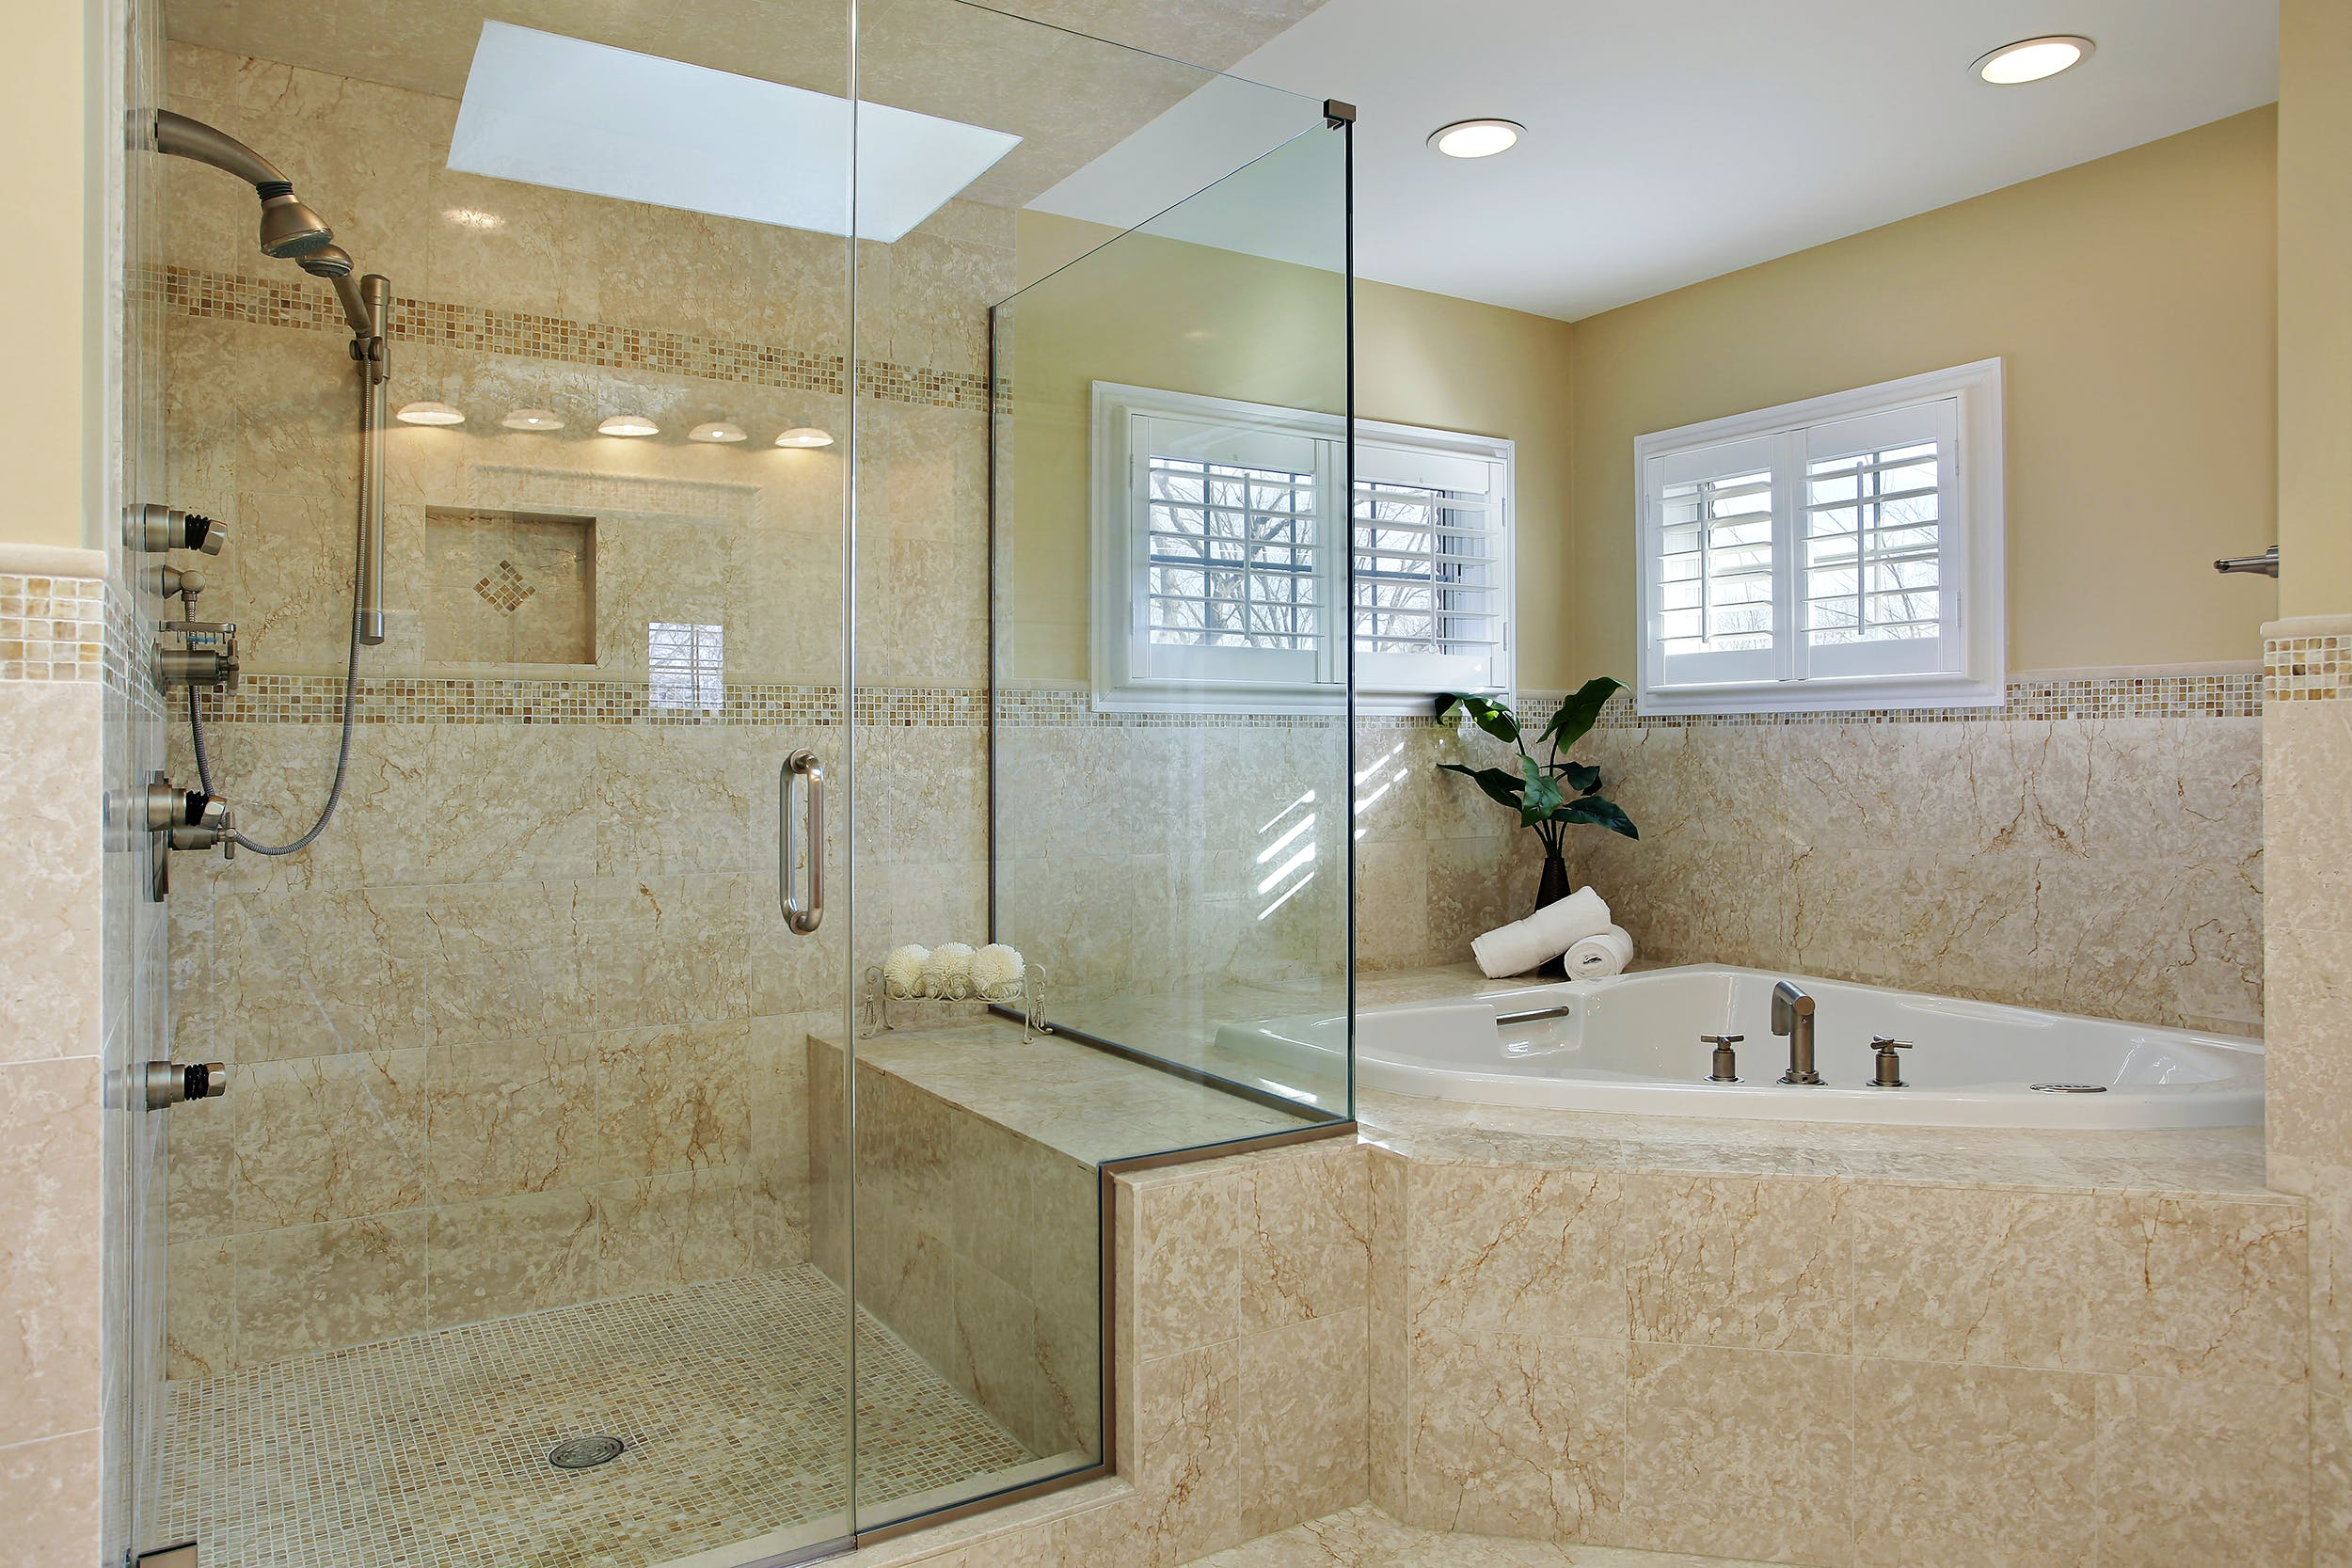 Difference Between Framed and Frameless Shower Enclosures